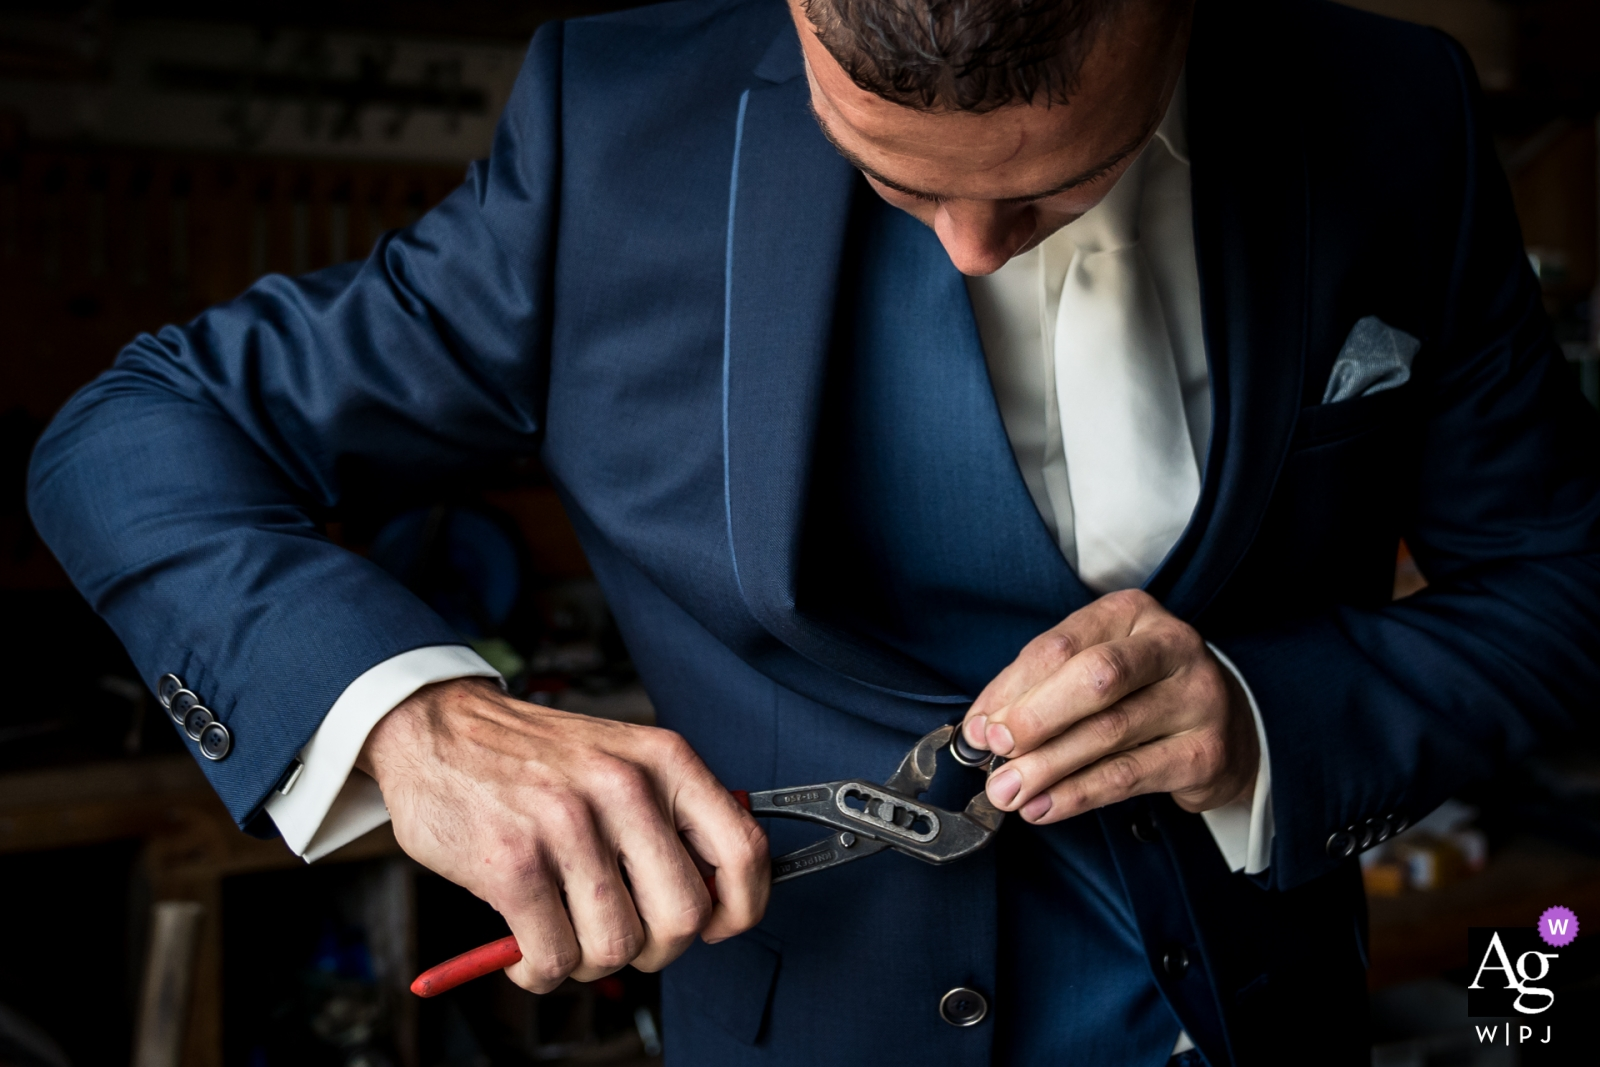 At the home of the parents of the bride, in Galder. Groom is repairing the button of his jacket.